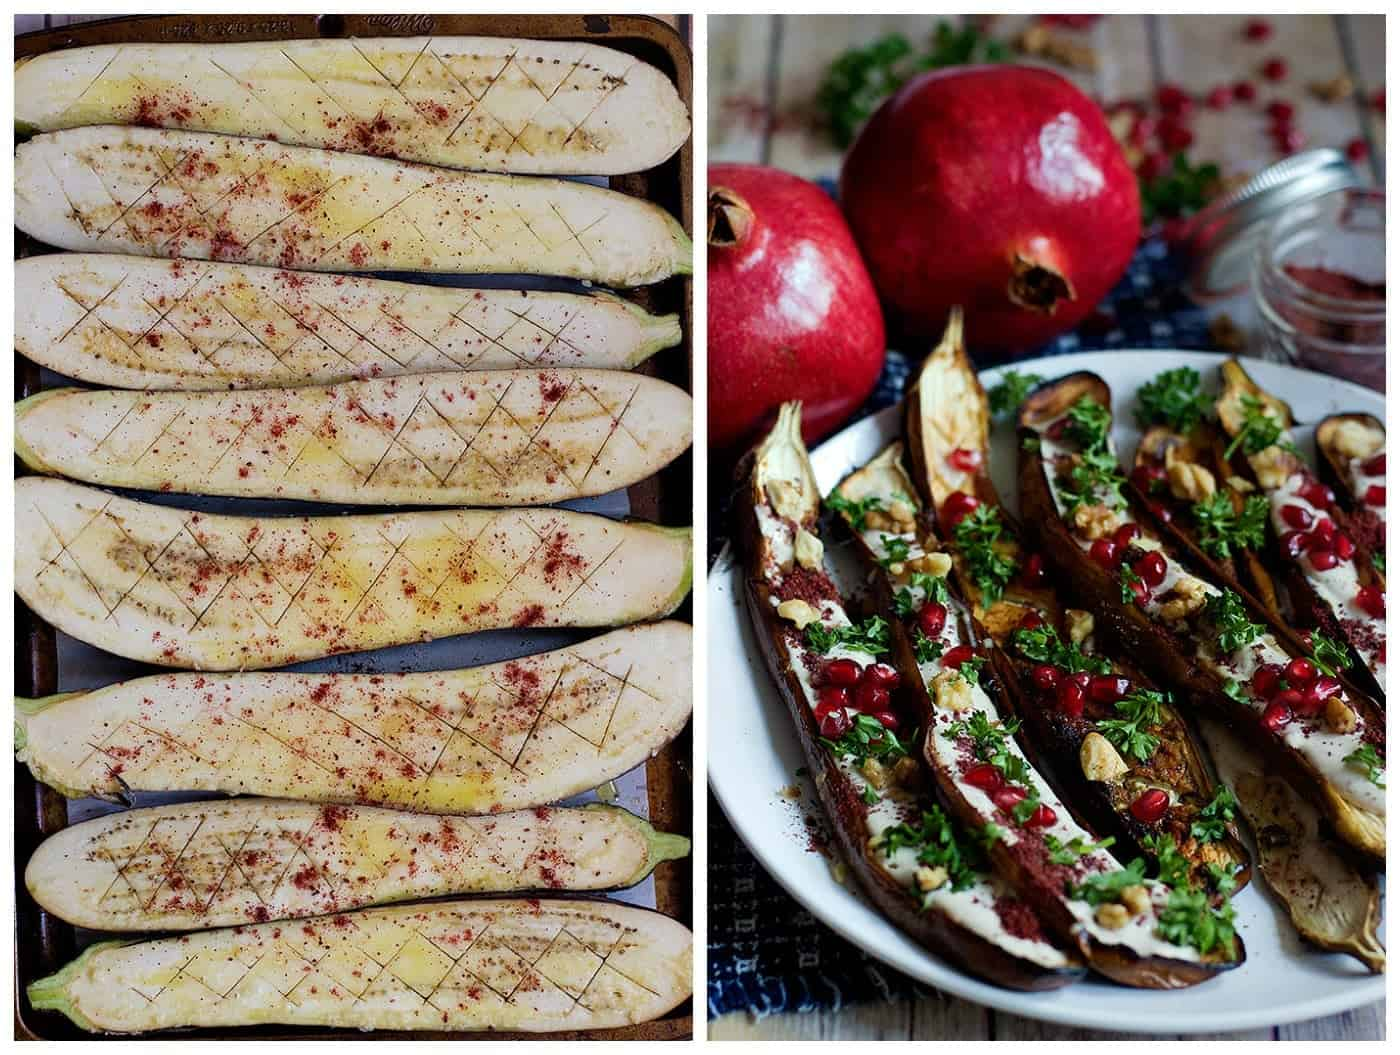 Eggplants cut into halves lengthwise and drizzled with olive oil. Top with sumac and roast.